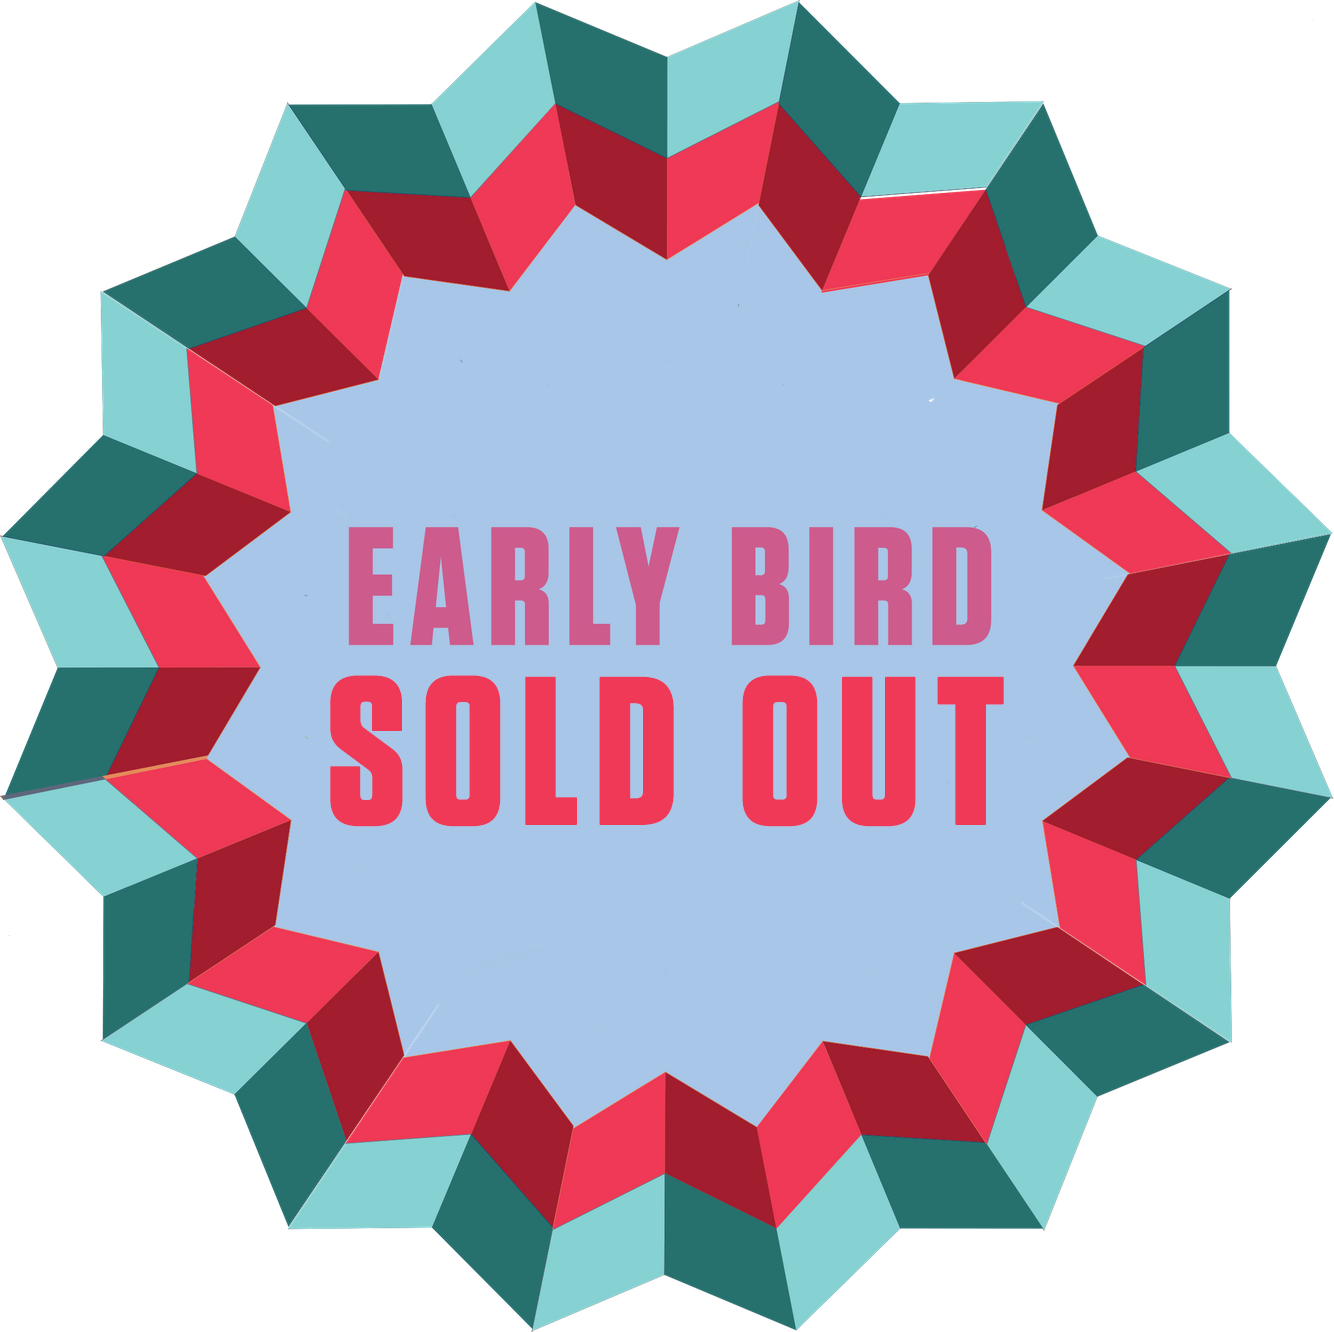 early bird-soldout2.png